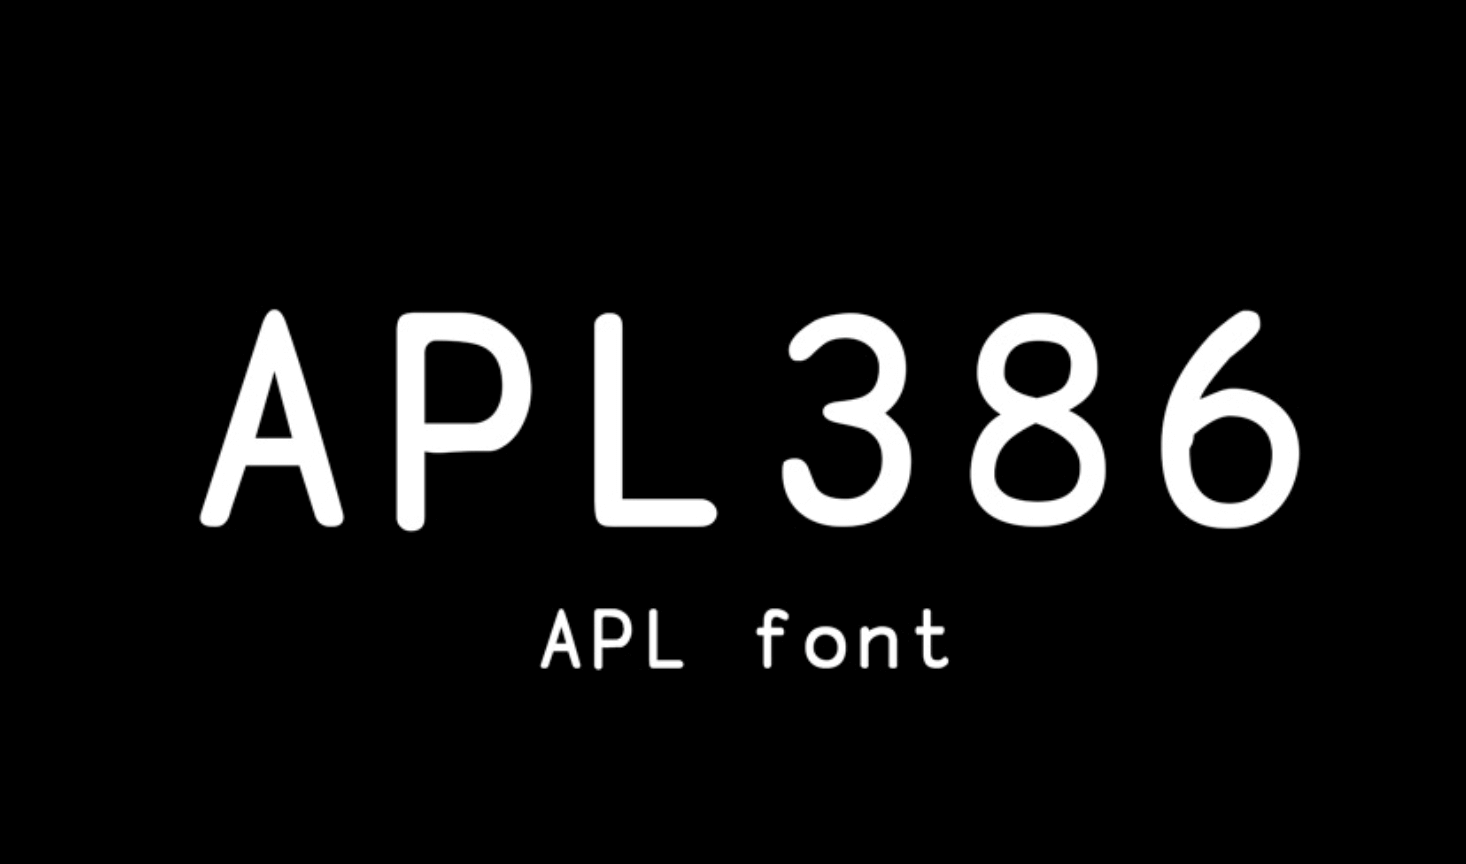 Free commercial typeface. This font is APL386